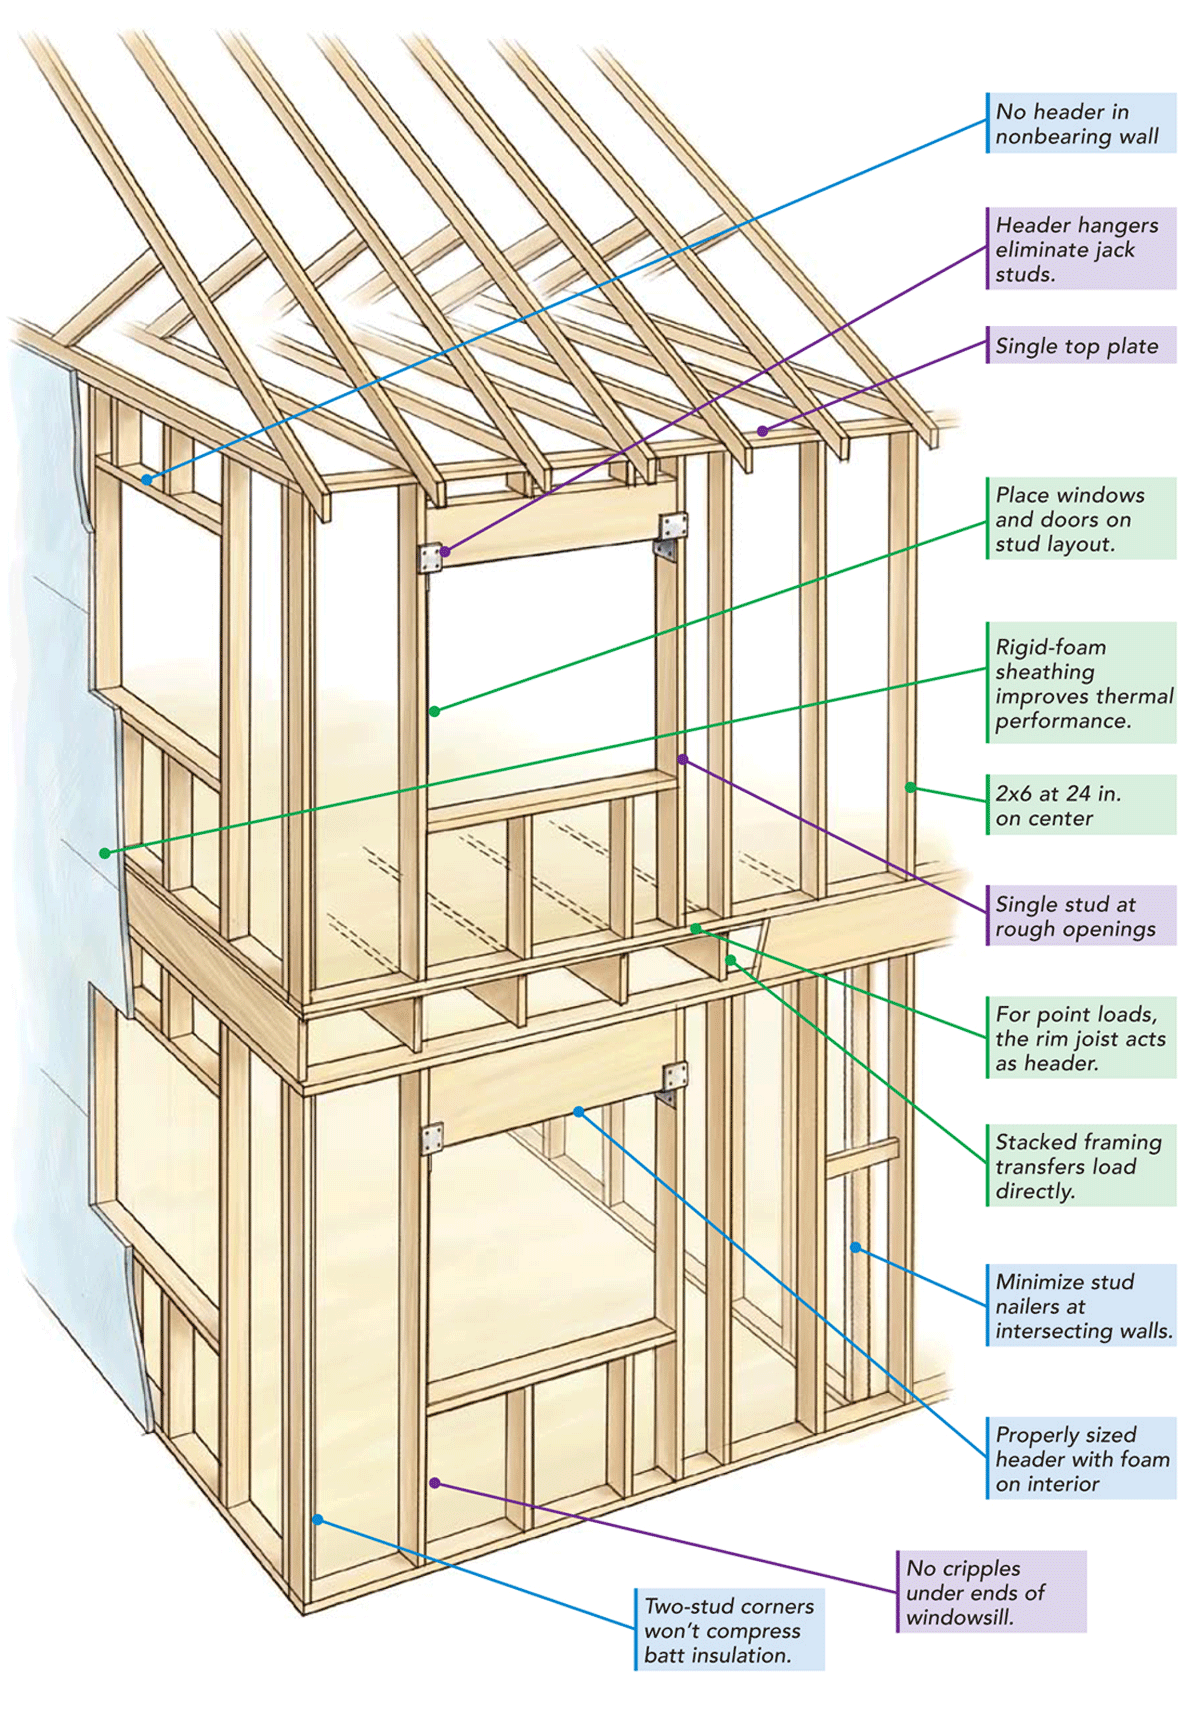 Stacked framing (not the ProHOME). FHB image.